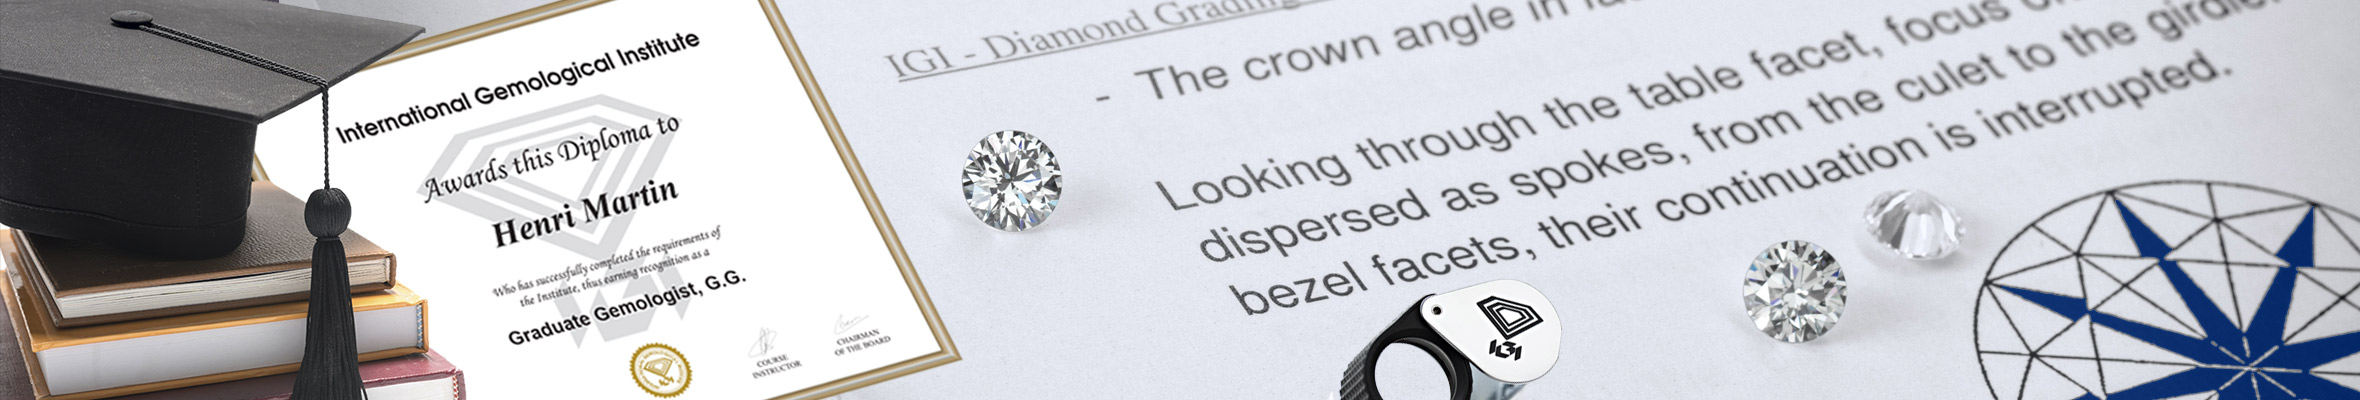 IGI Polished Diamond Course